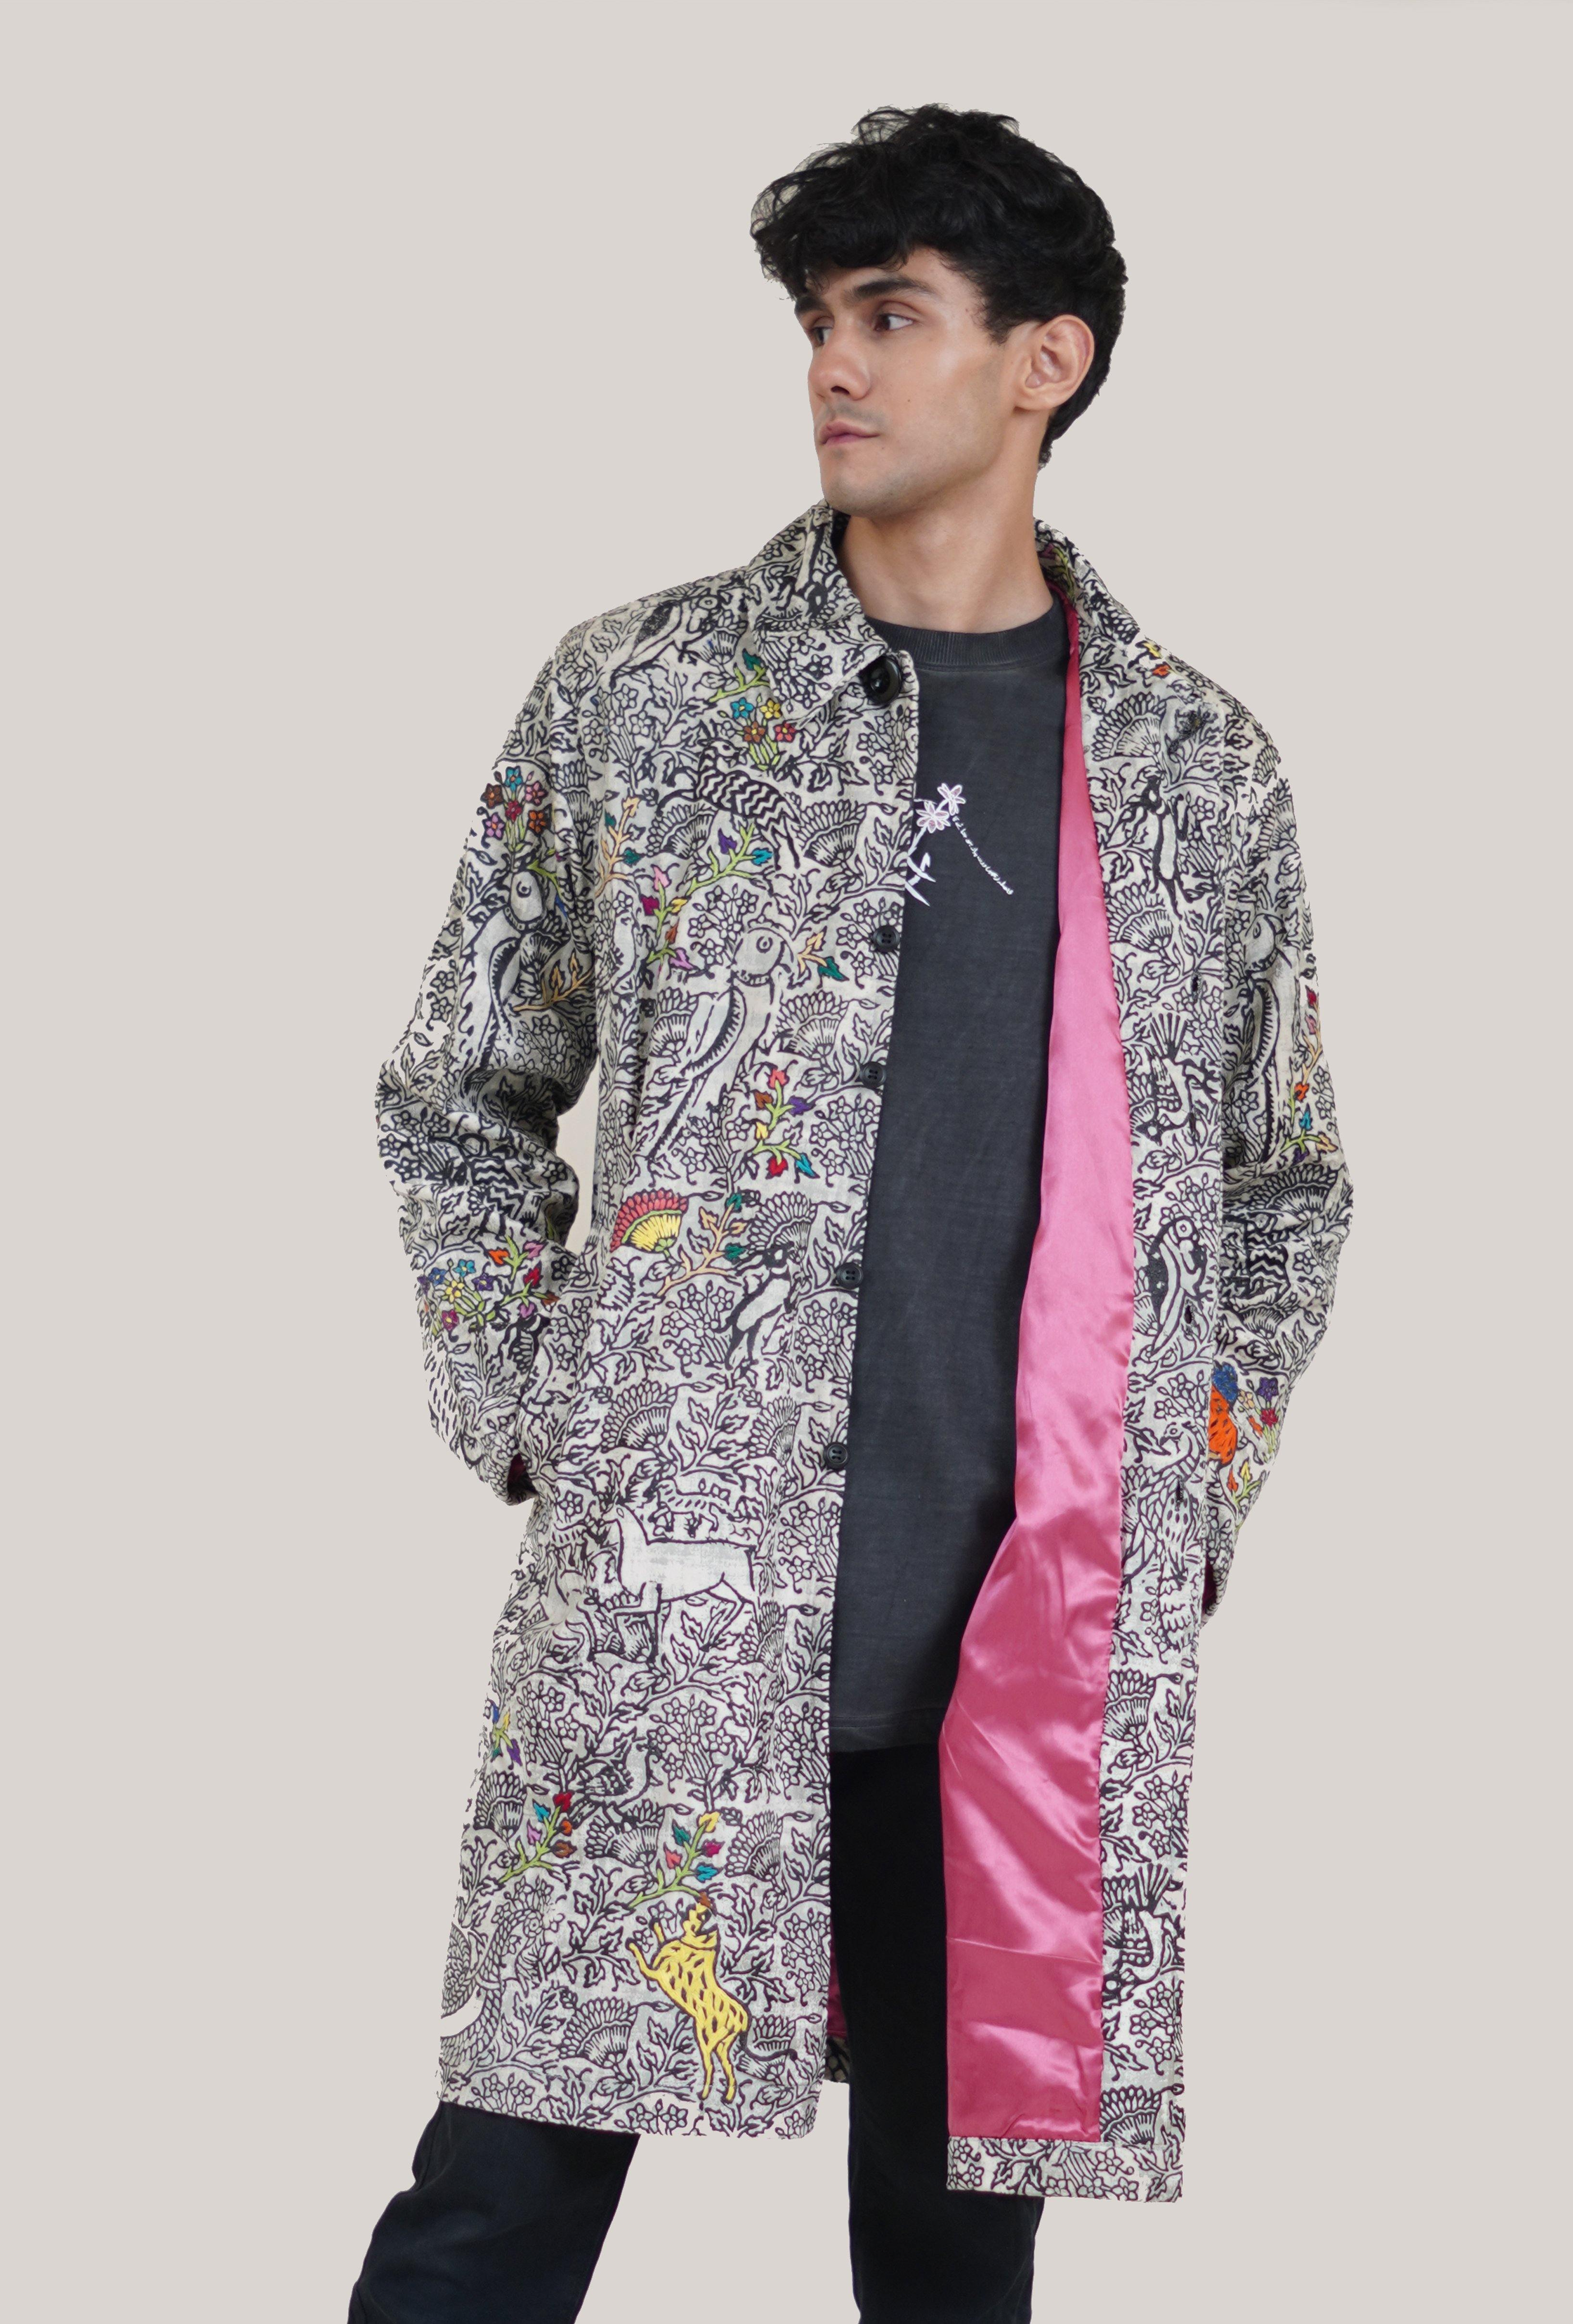 Hand Block Print and Embroidered Velvet Coat